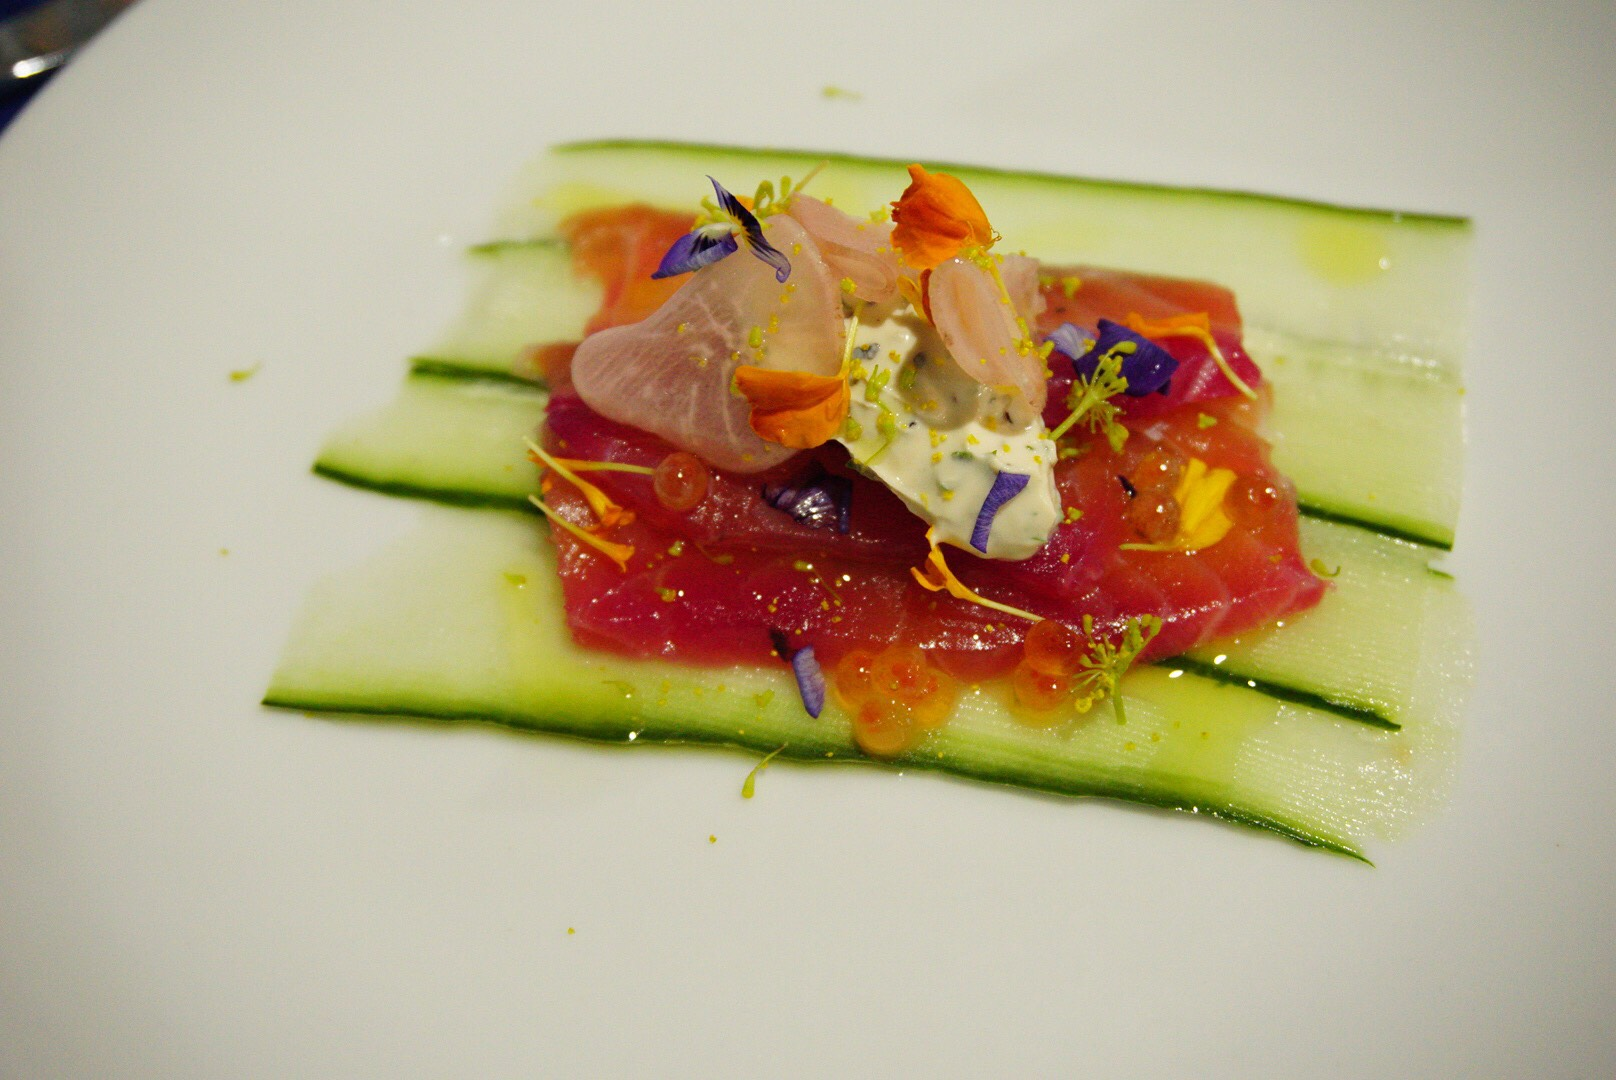 The Pickled Herring's Smoked salmon with roe,dill cream, pickled radish and cucumbers